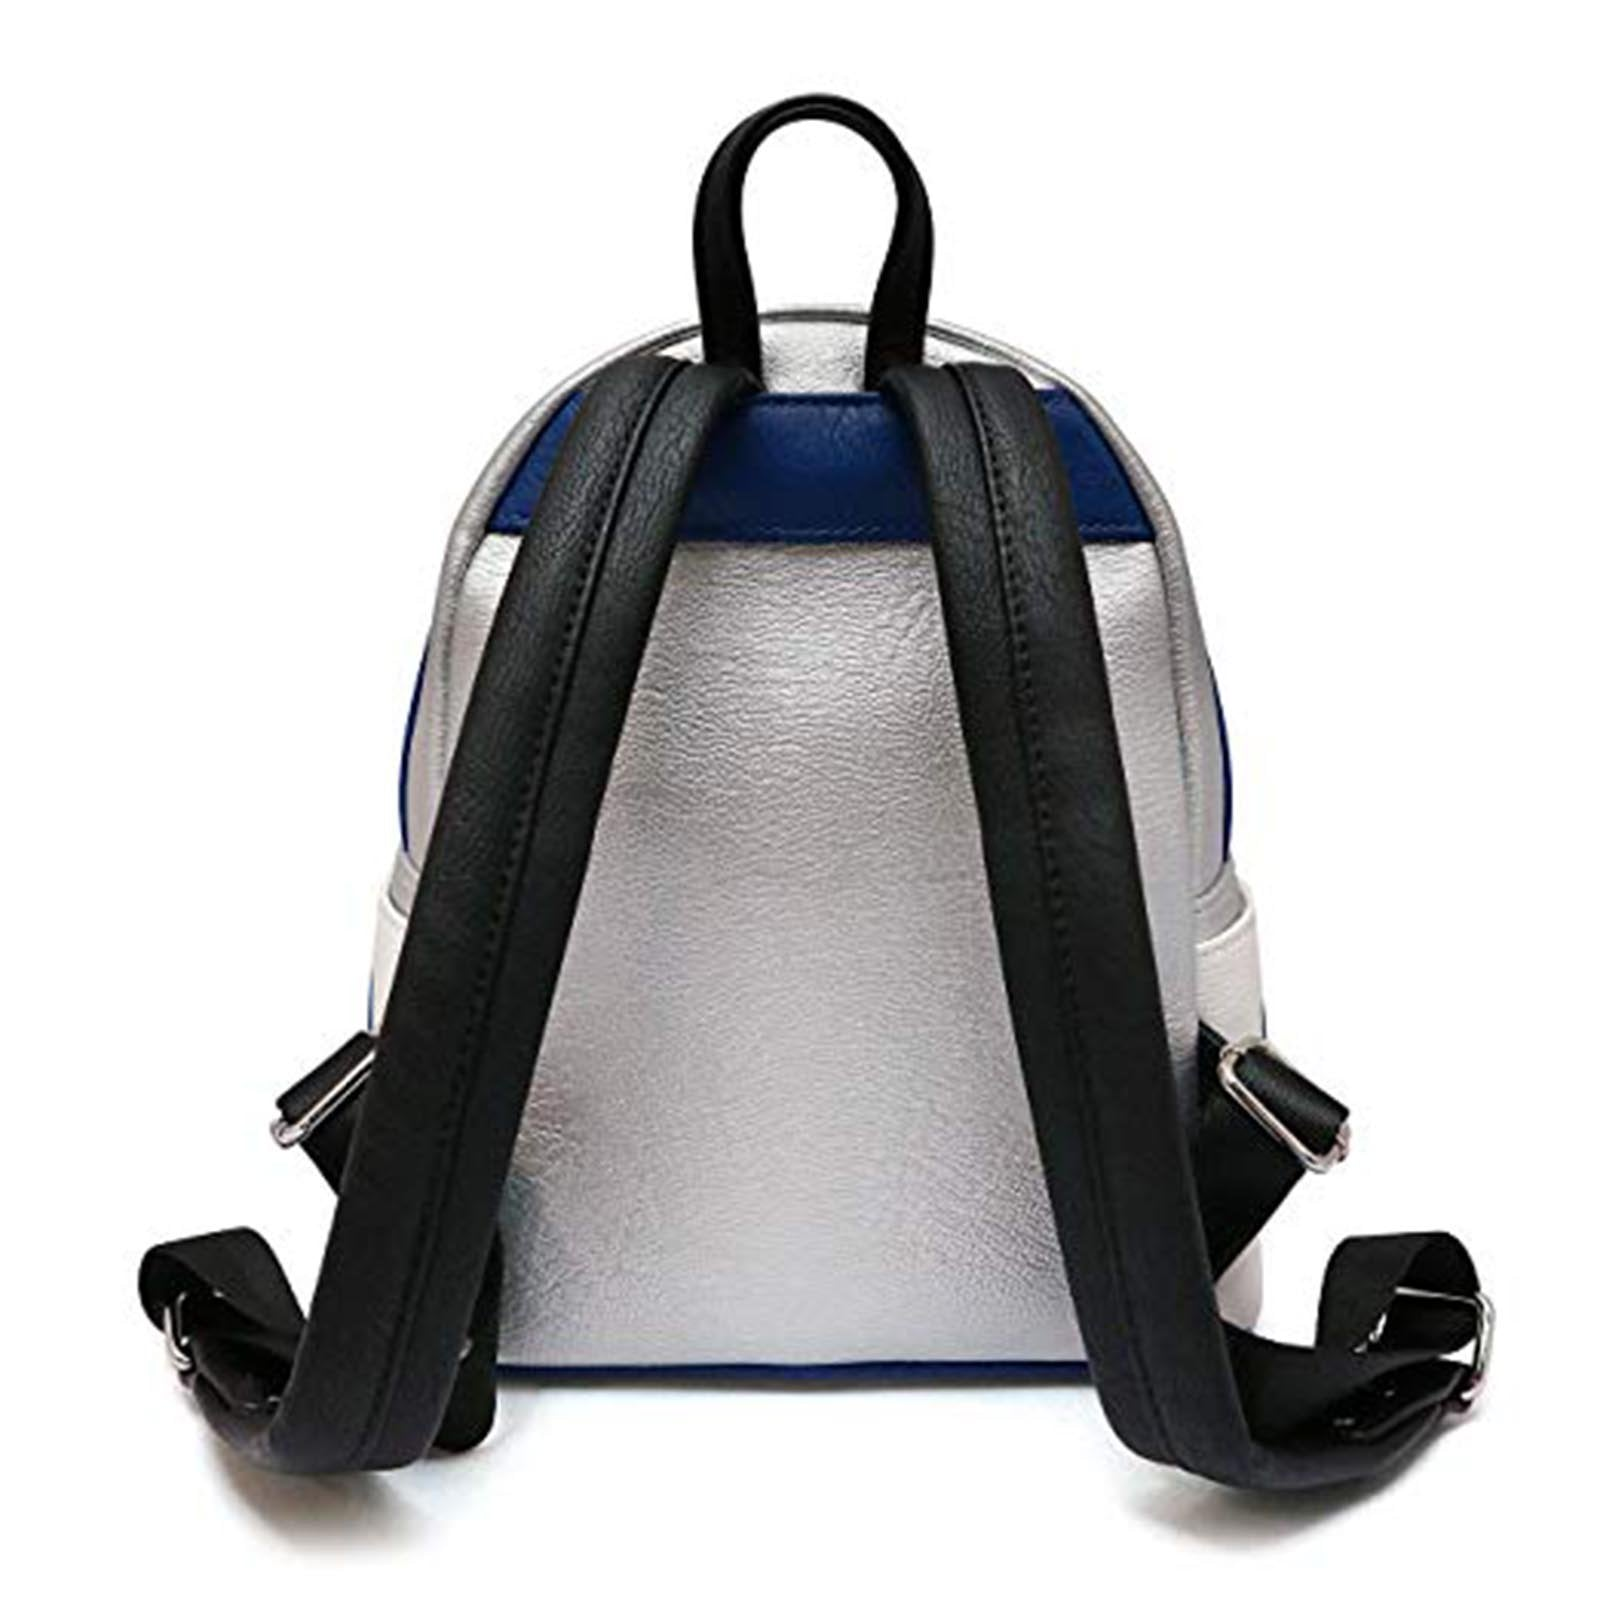 c29ab27e107 Loungefly Star Wars R2-D2 Applique Mini Backpack